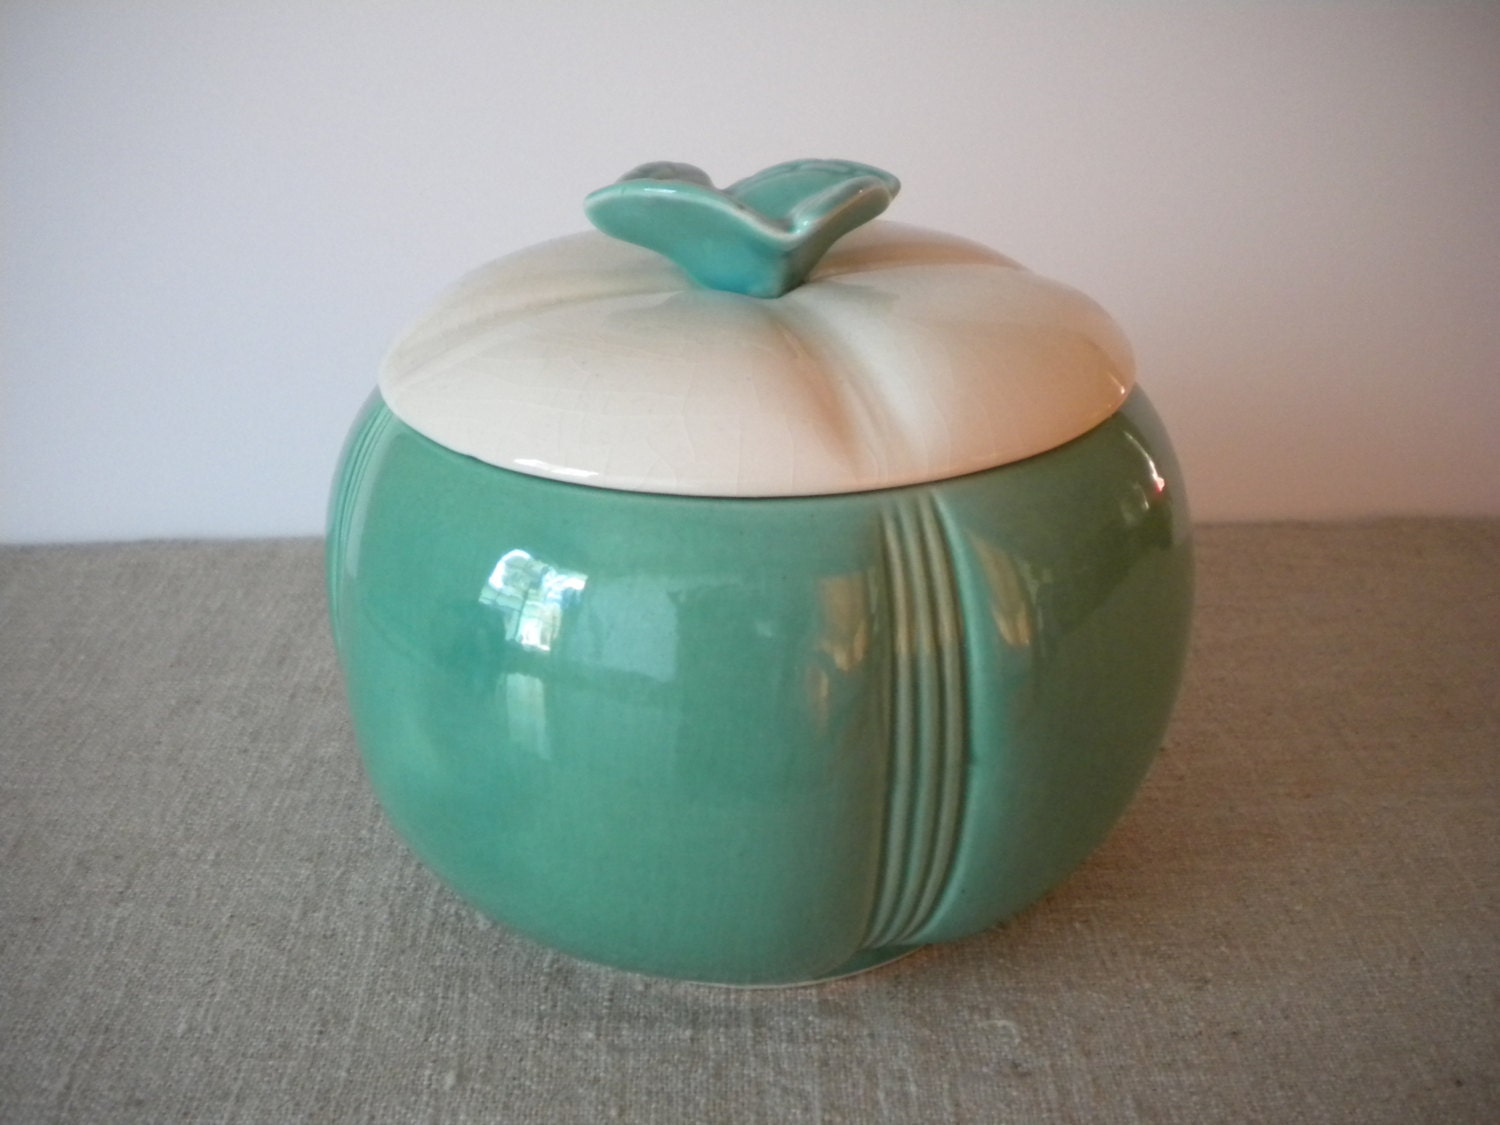 Vintage Cookie Jar Aqua Turquoise Blue Amp White 1950 S